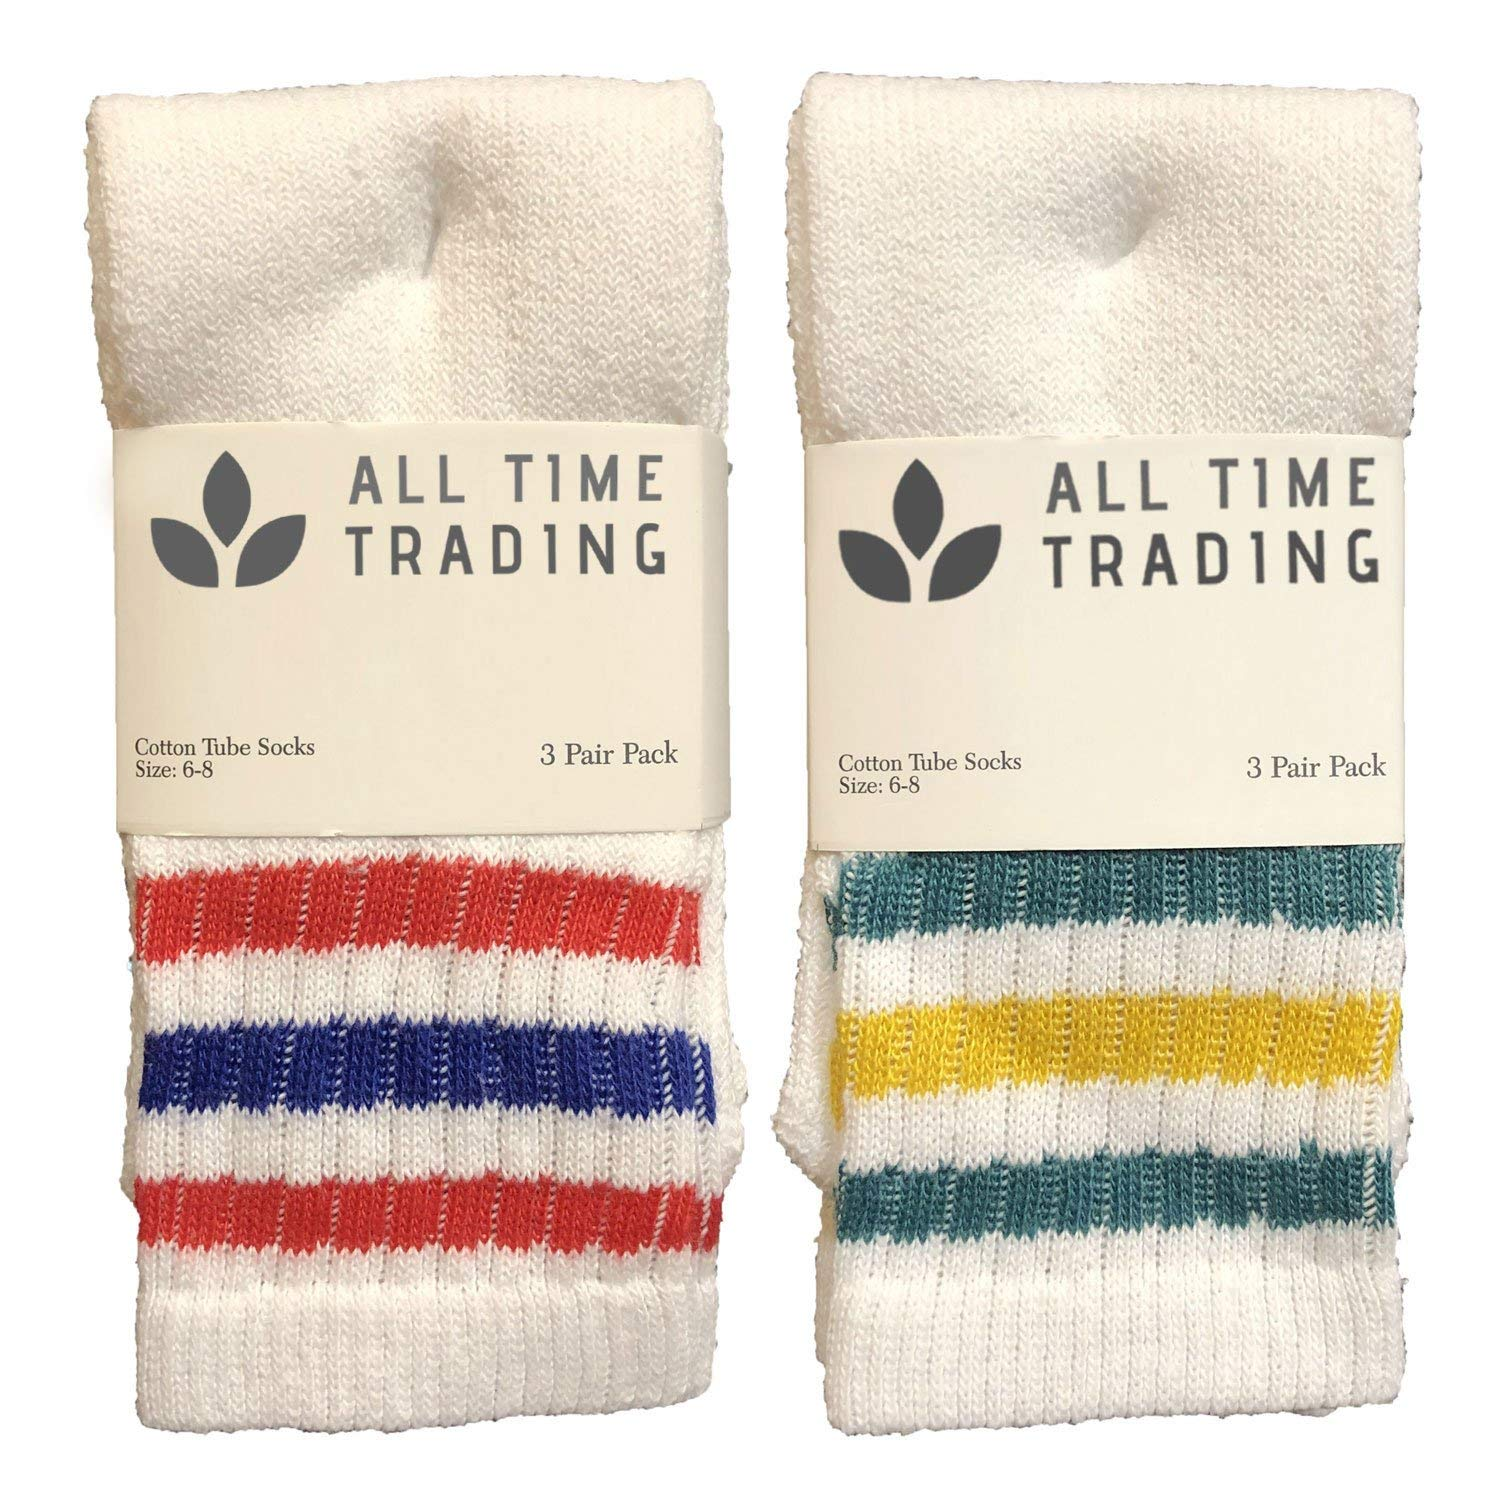 Physicians Approved Girls Cotton Diabetics Quarter Ankle Socks 4-6 Assorted w/Green Yellow/Reed Blue Stripe - 240 Pack